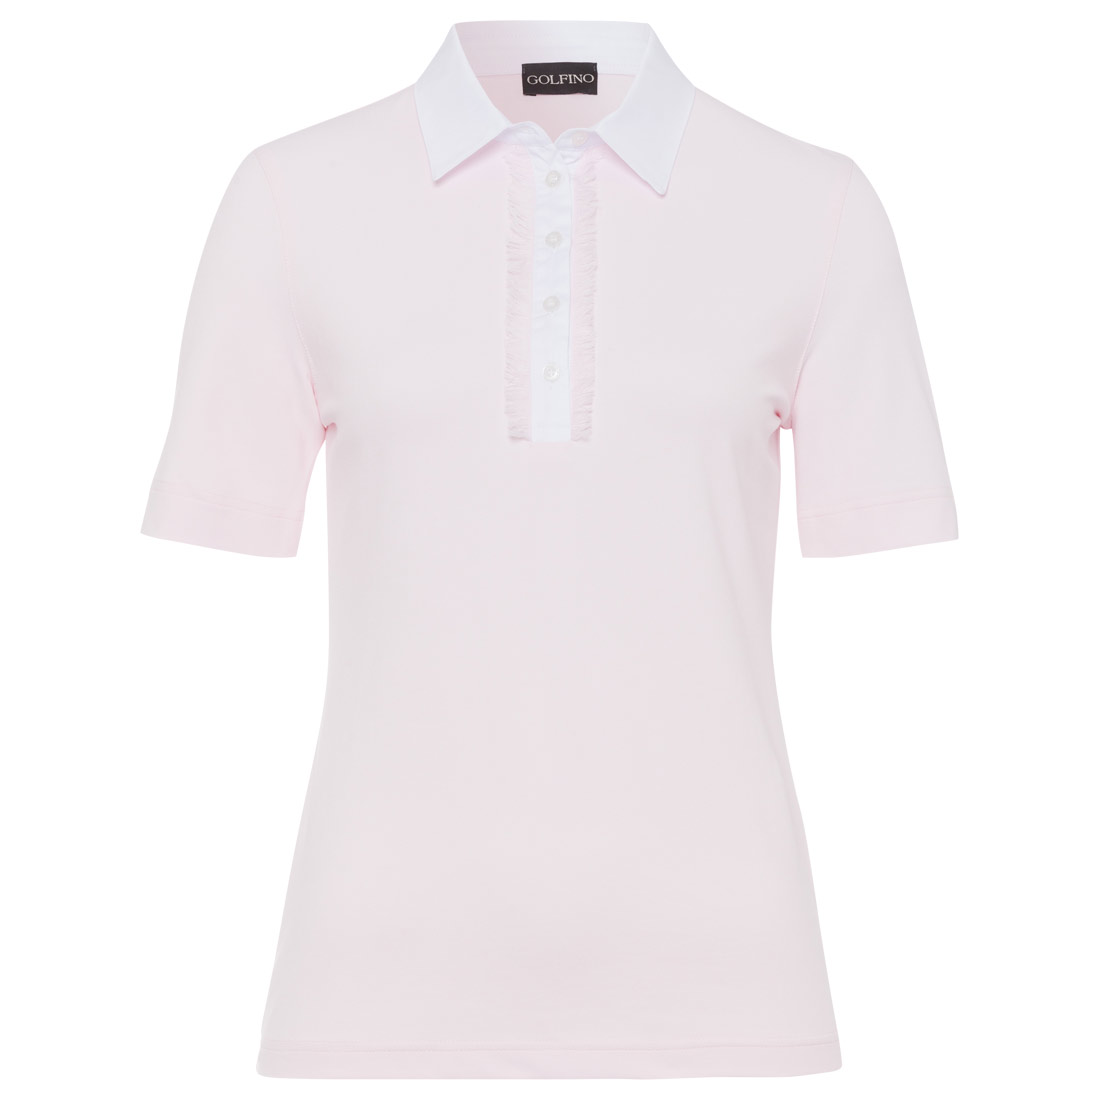 Damen Kurzarm-Polo in weichem Piquet